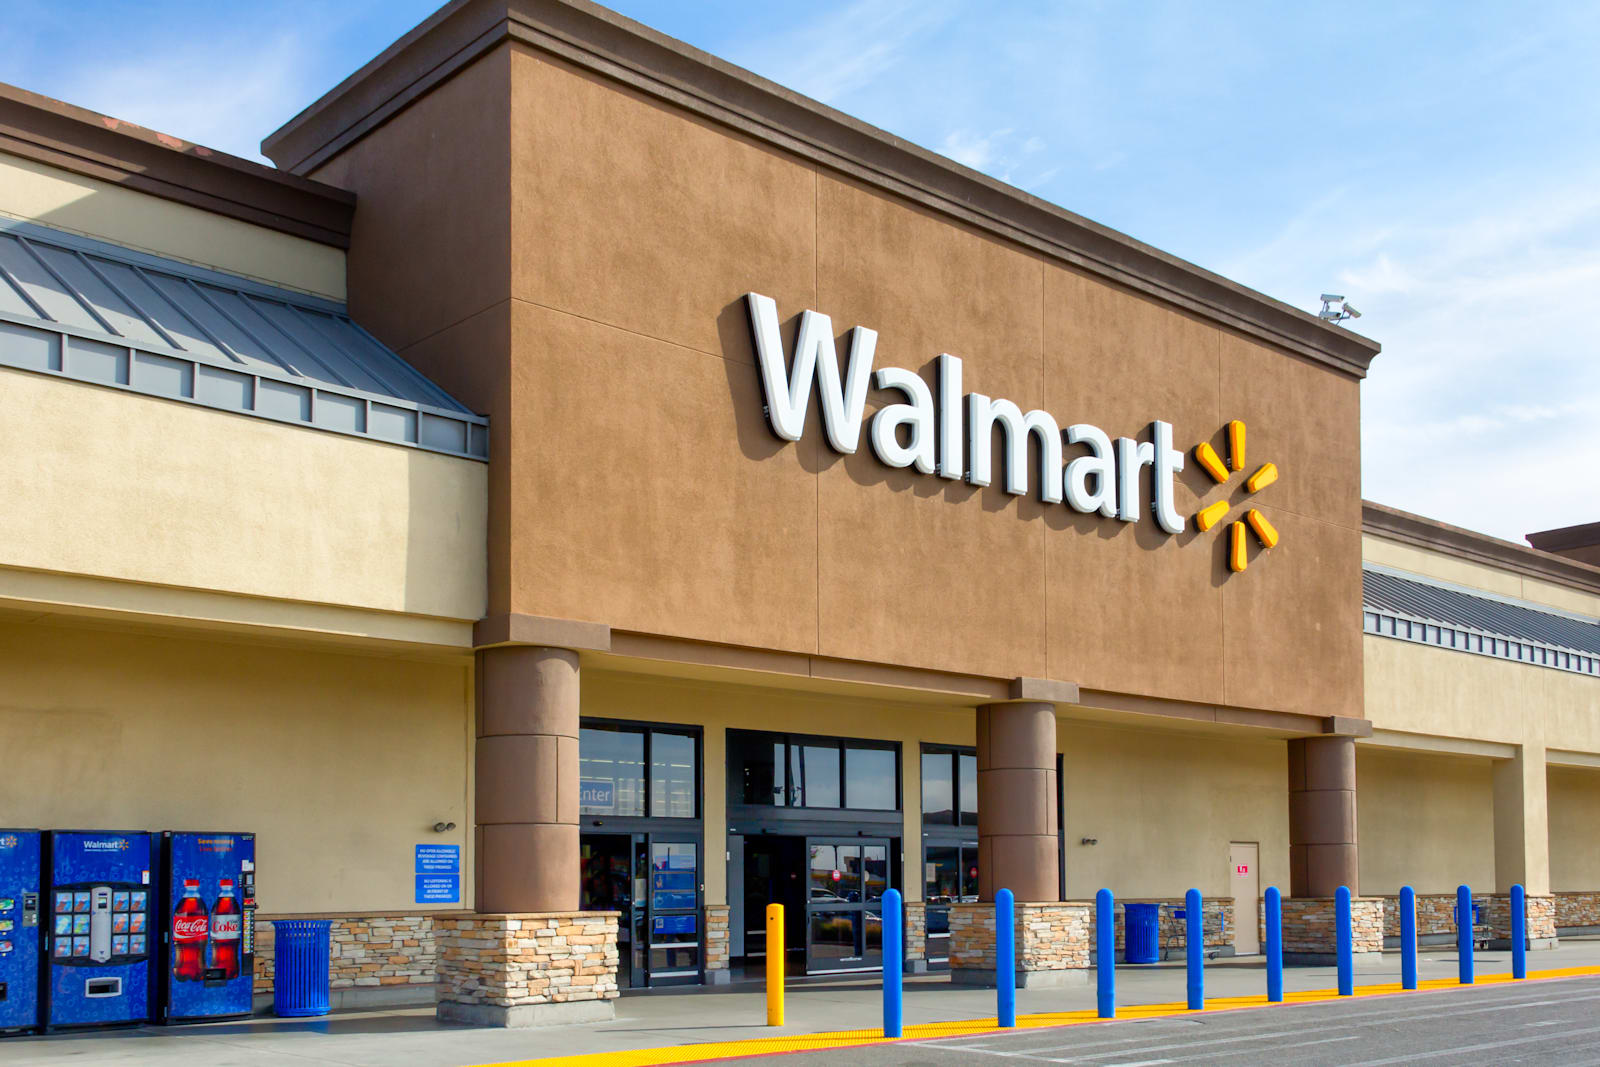 Walmart recruits its employees to deliver your packages